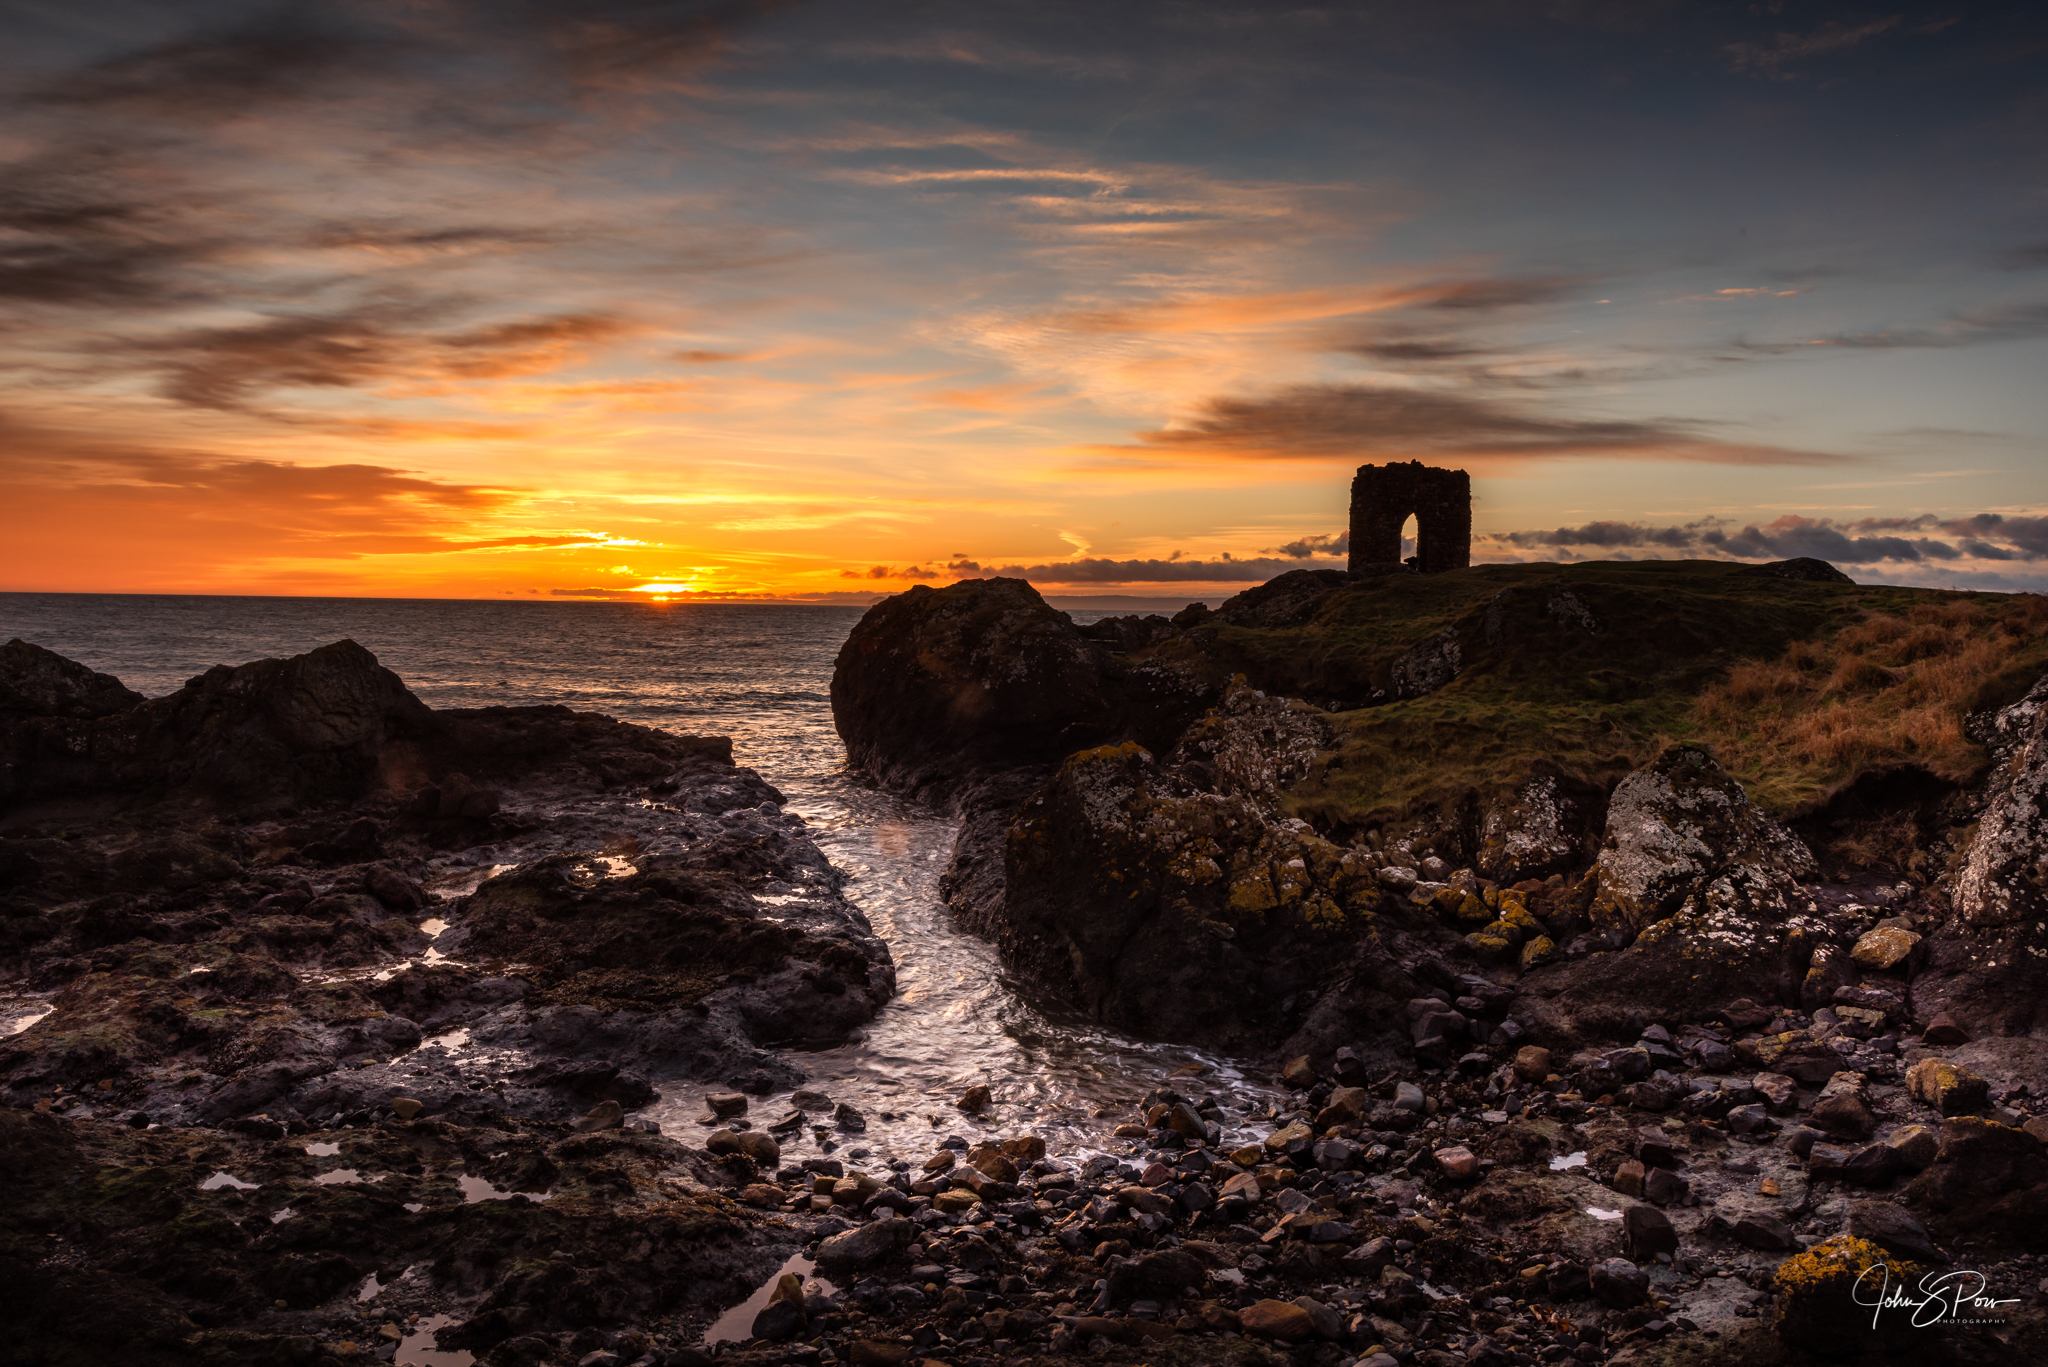 Lady Anstruther Tower, Elie